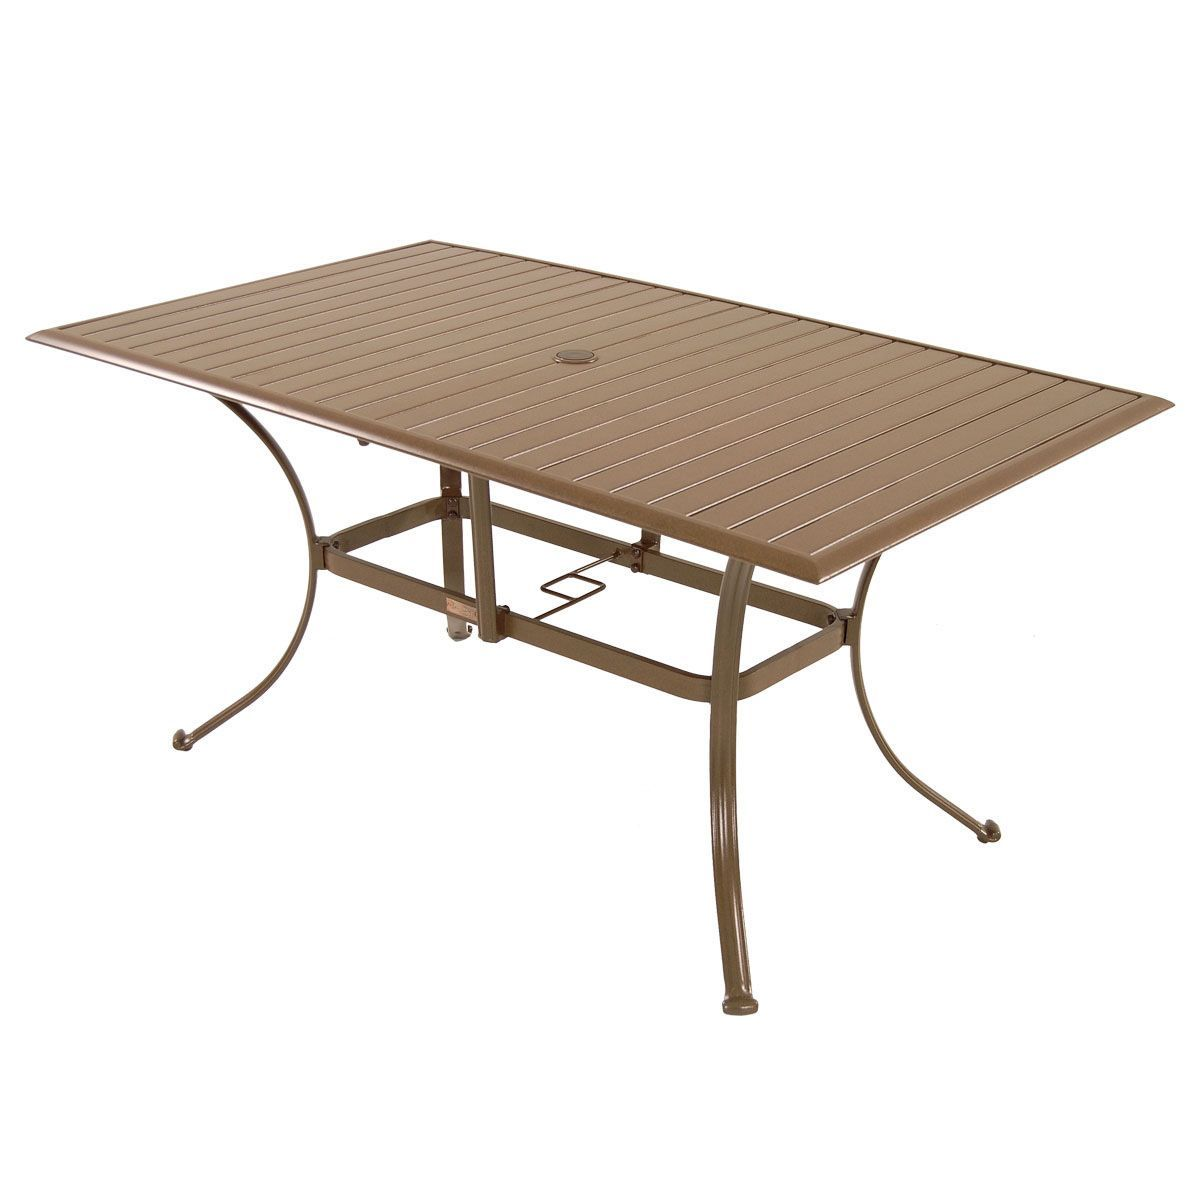 The Island Breeze dining table features a convenient umbrella hole to offer additional sun protection while enjoying a meal outdoors. Crafted with powder-coated aluminum, this contemporary Panama Jack table boasts a rich espresso finish.